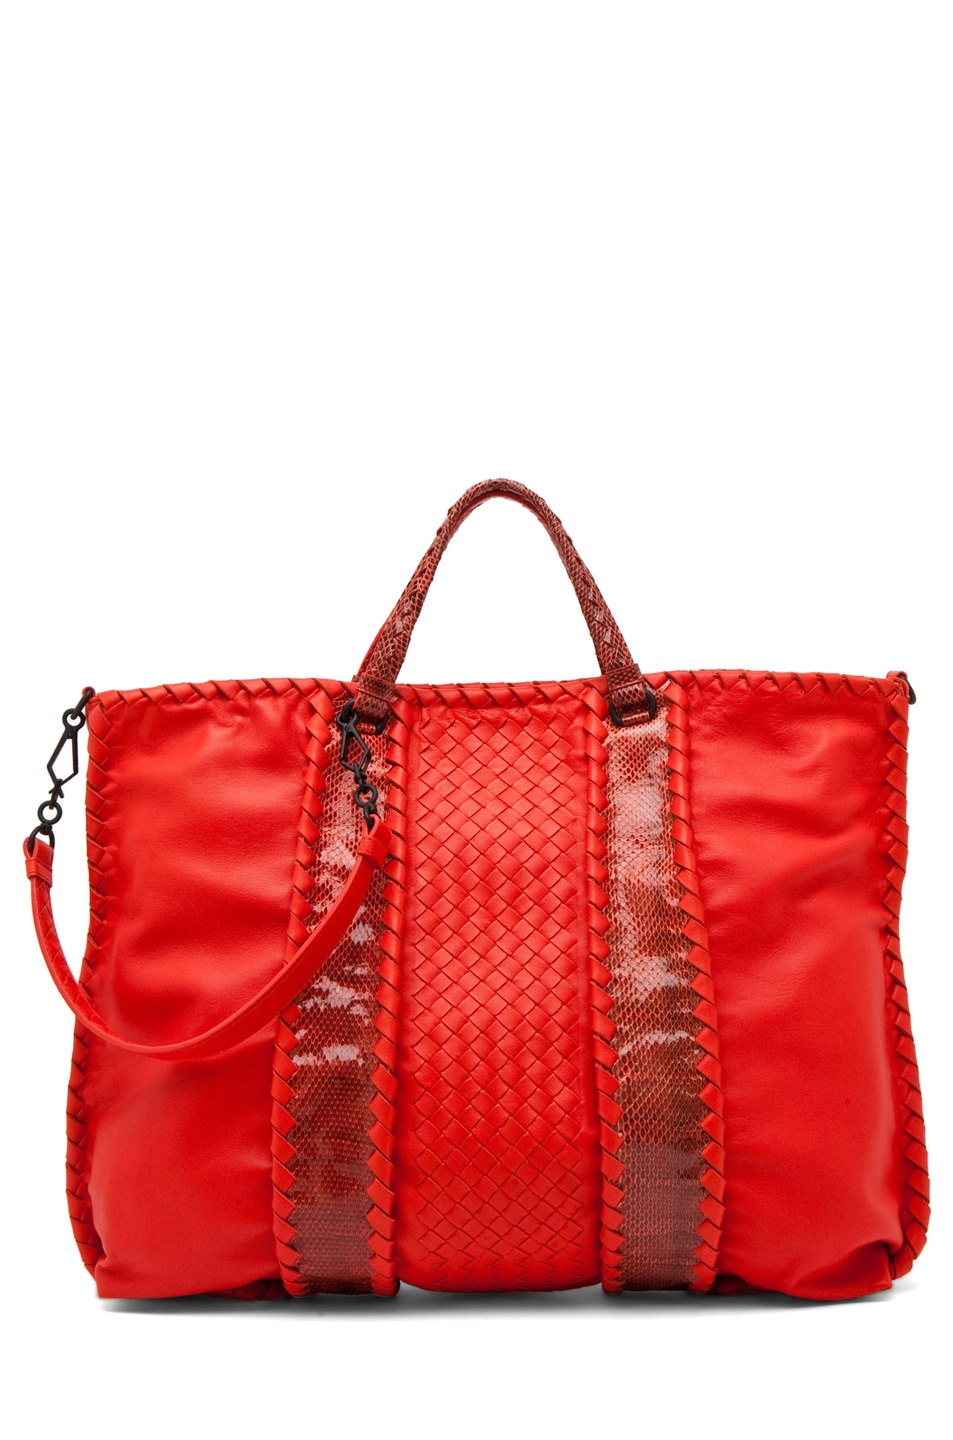 Image 1 of Bottega Veneta Nappa Ayers Shoulder Bag in Fire